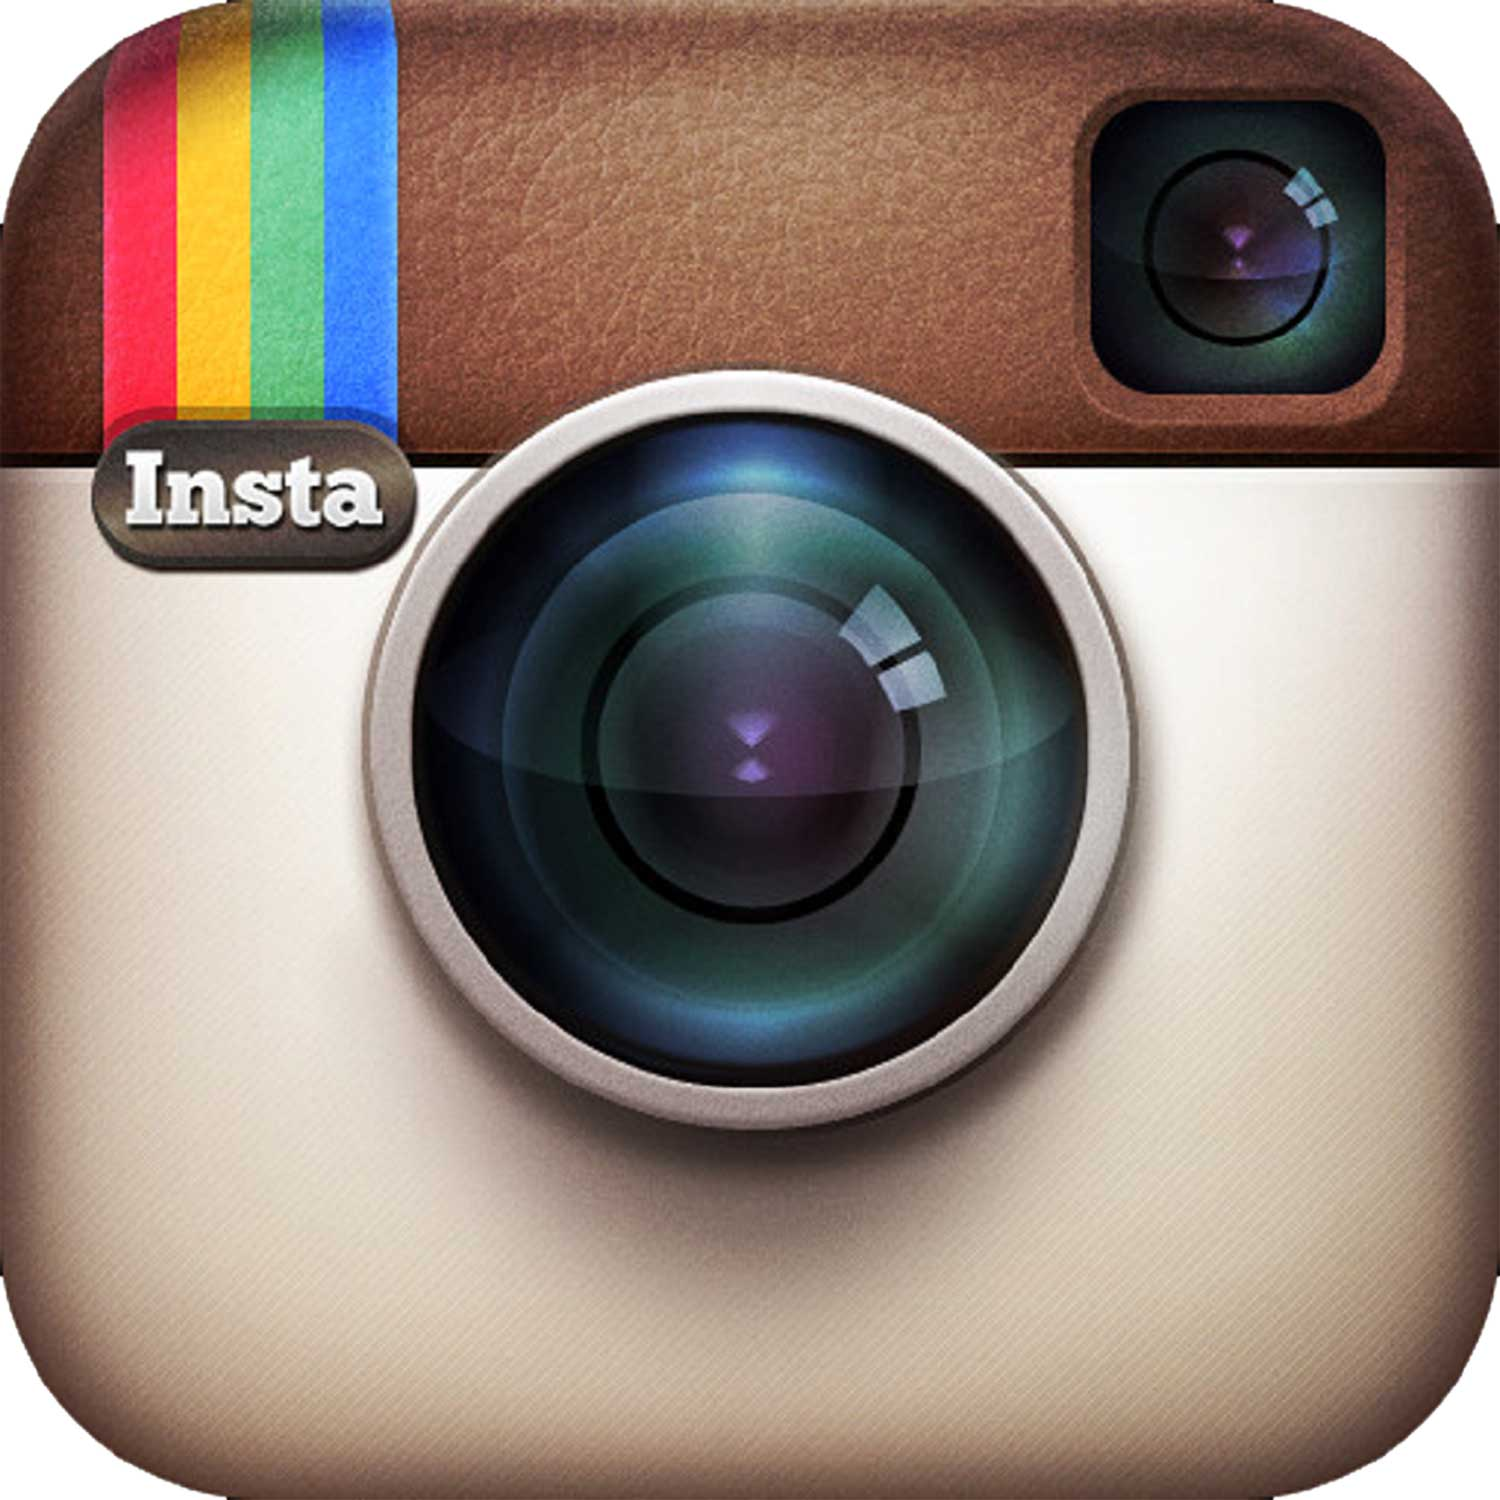 Tookii things to do with kids on Instagram one of the activities for kids